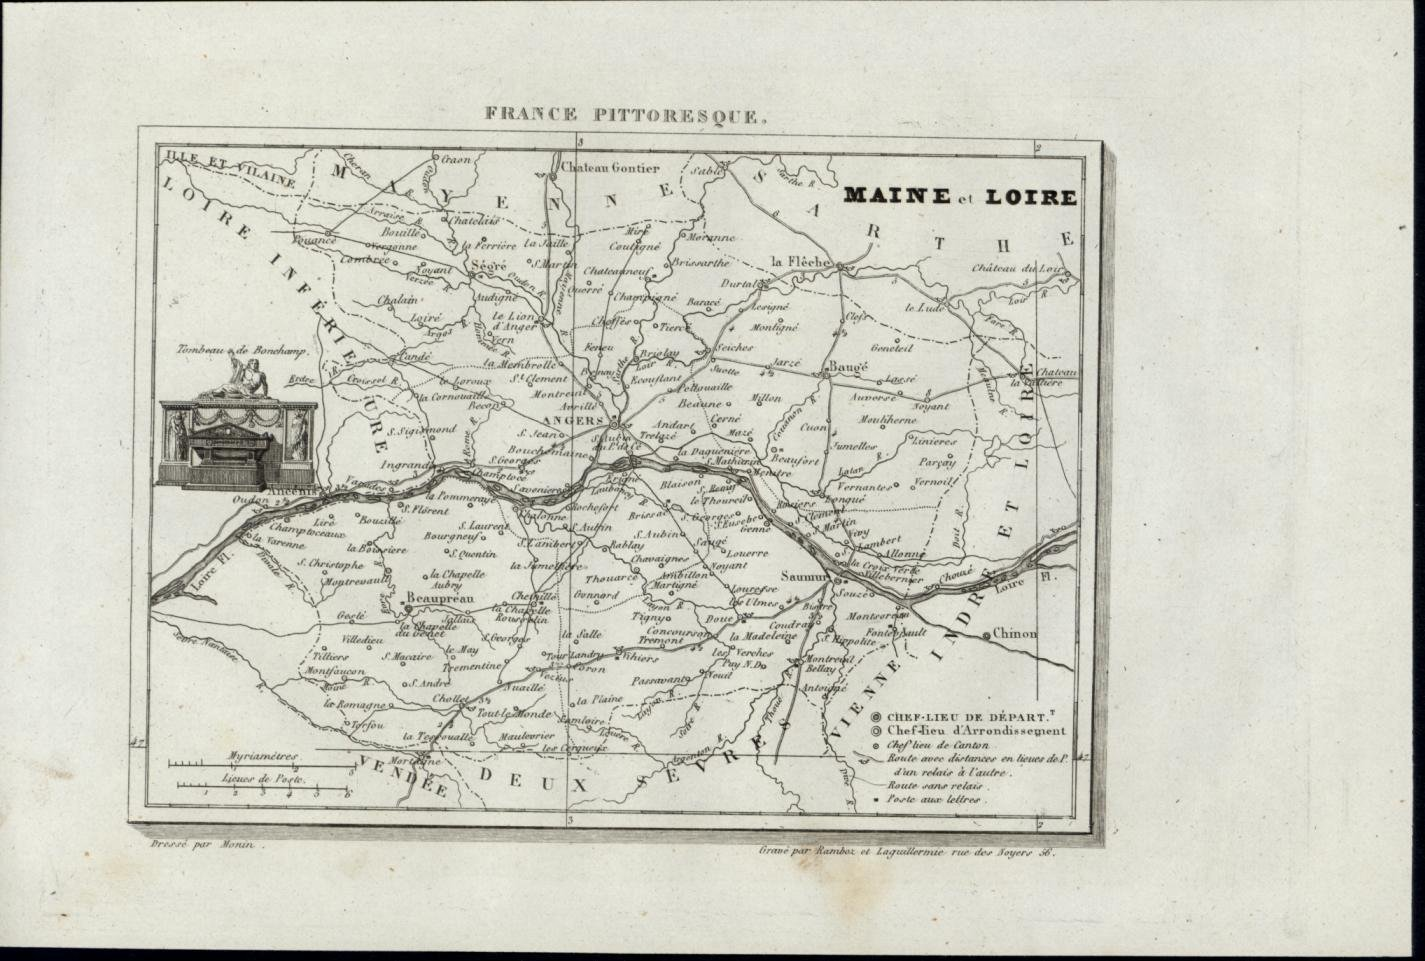 Maine Loire Tomb Of Bonchamp Angers River 1835 Scarce Antique France